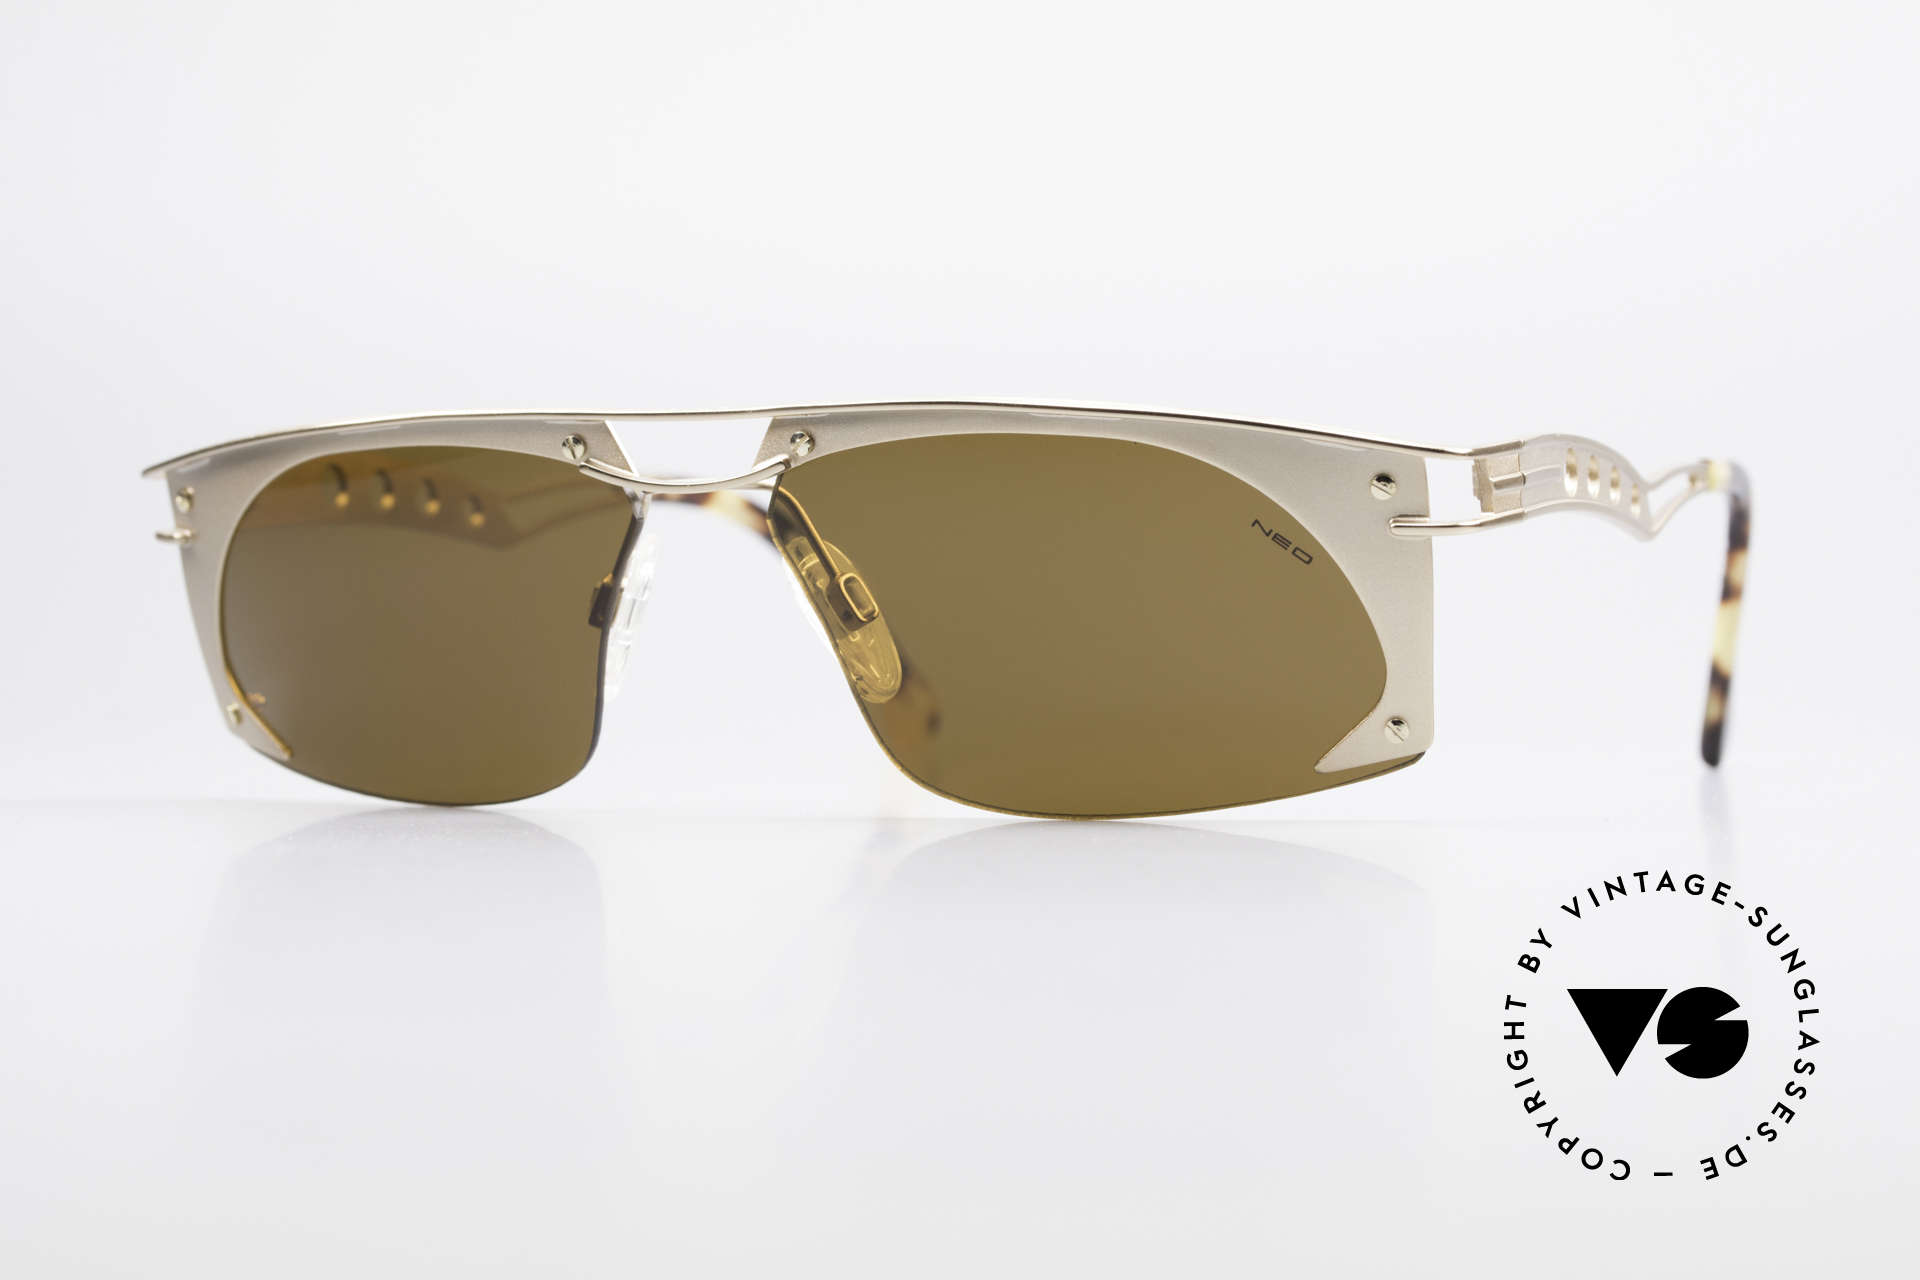 Neostyle Holiday 968 Vintage Steampunk Sunglasses, extraordinary NEOSTYLE sunglasses from the 90's, Made for Men